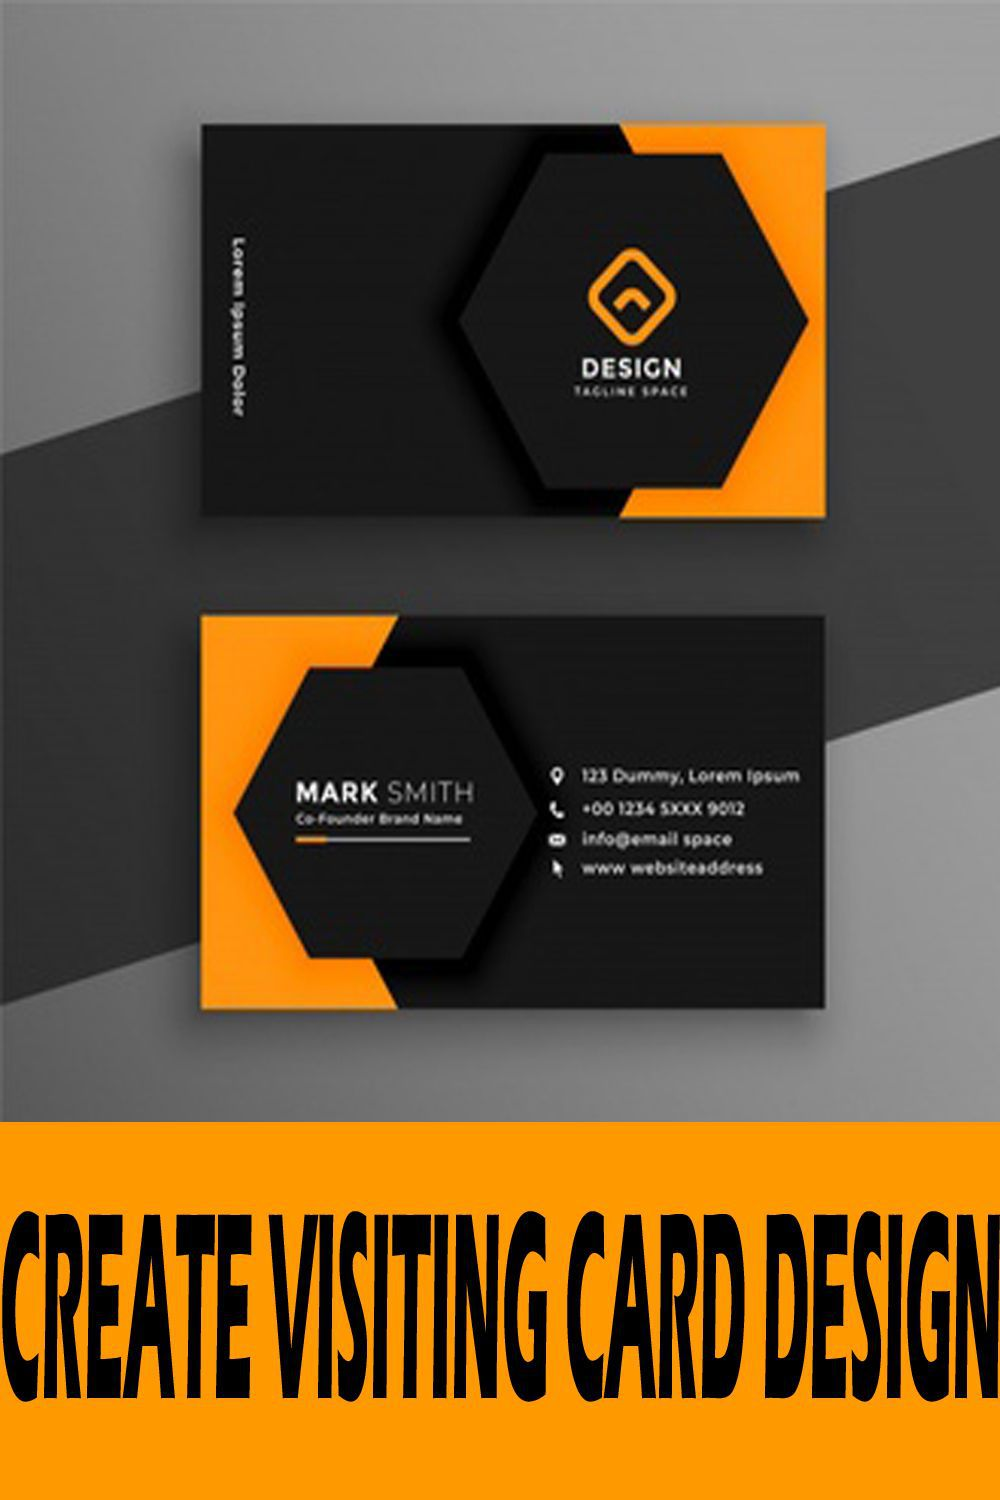 000 Staggering Blank Busines Card Template Psd Free Design  Photoshop DownloadFull